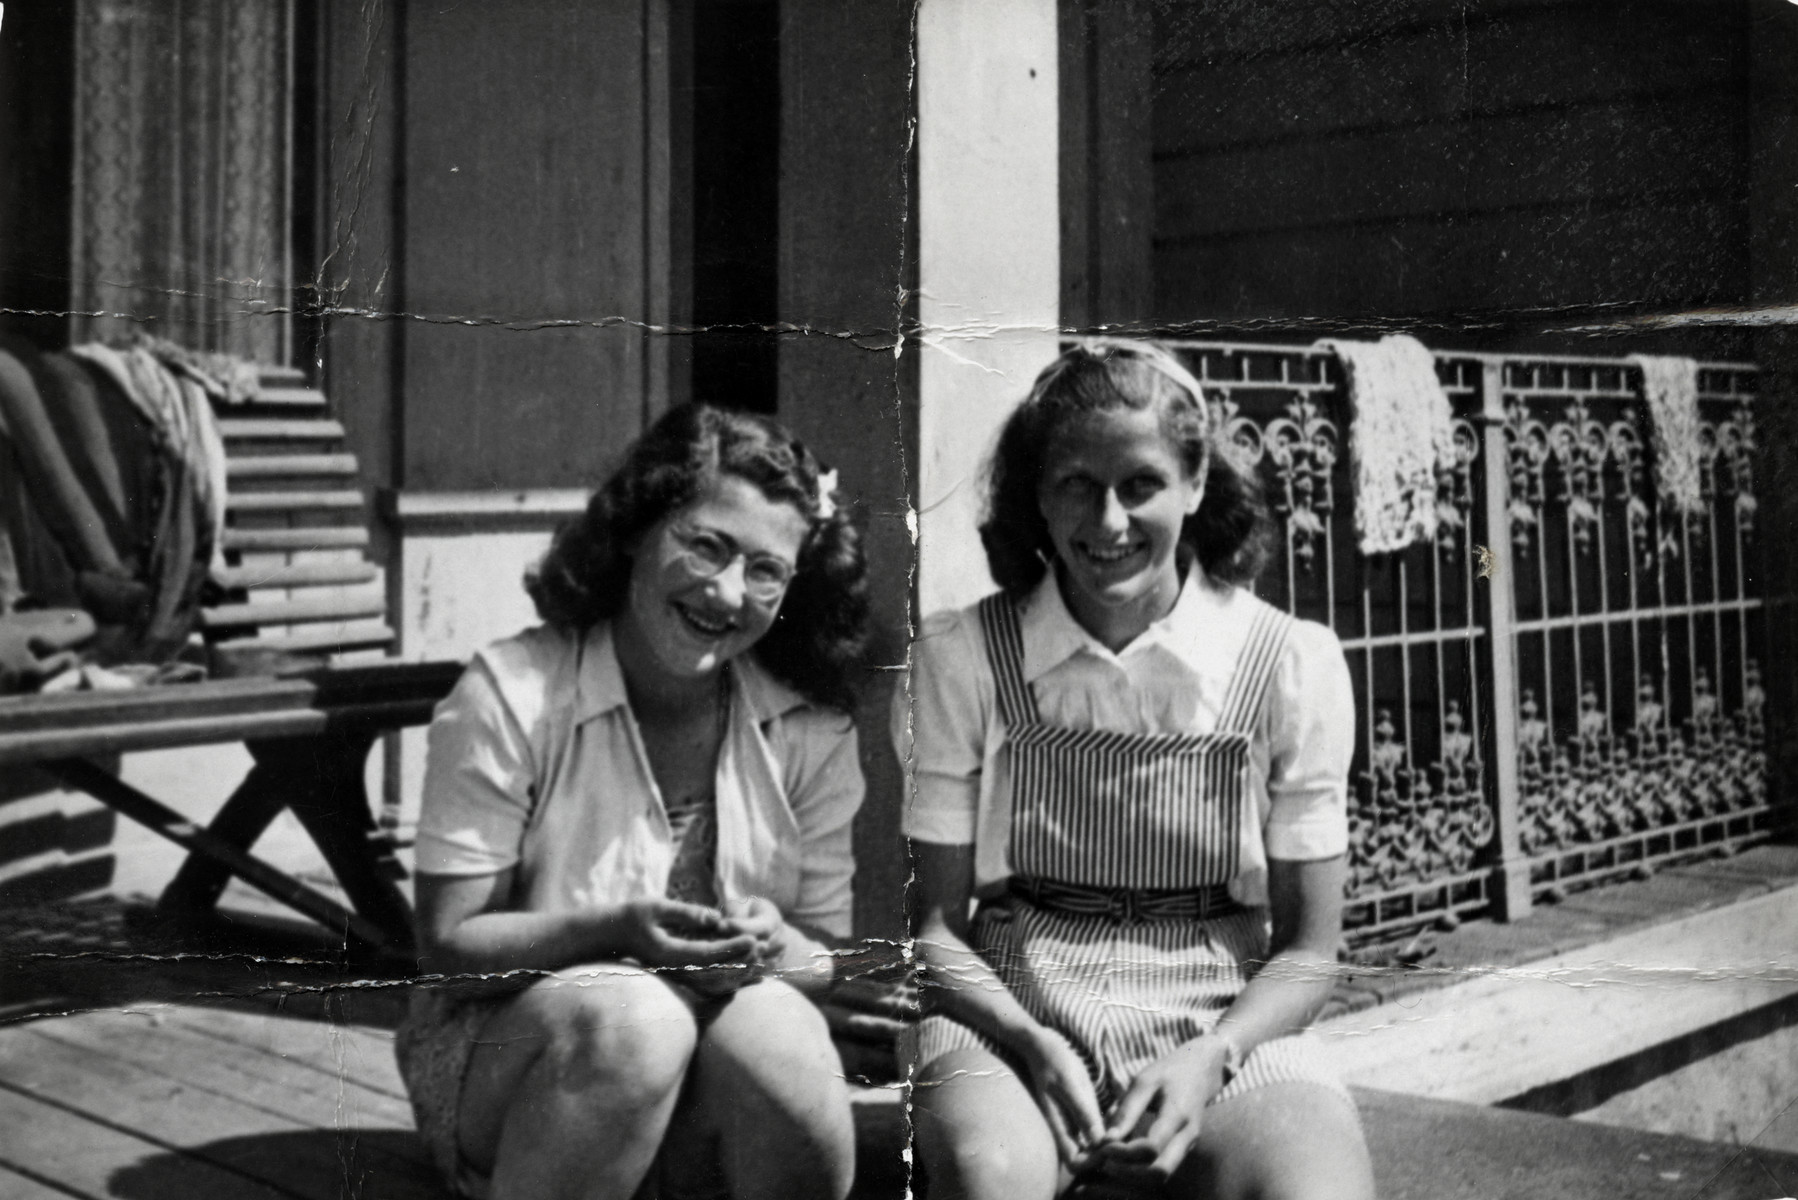 Celia Century, a Jewish refugee from Norway, sits a the deck of a summer camp in Ronneby Sweden next to a non-Jewish friend.